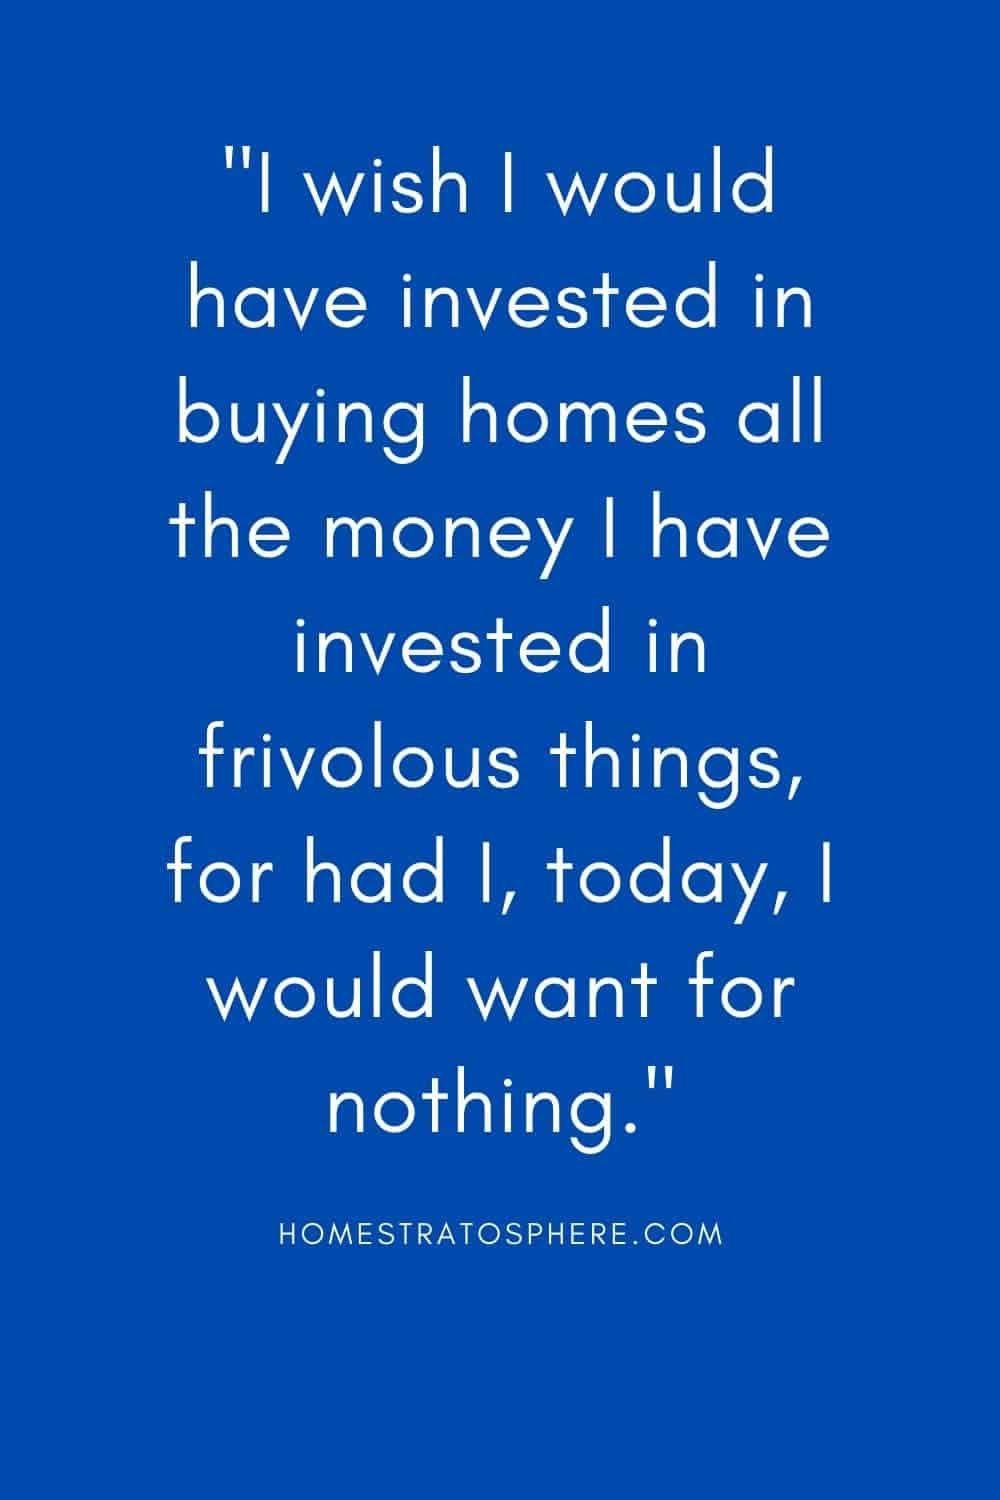 """I wish I would have invested in buying homes all the money I have invested in frivolous things, for had I, today, I would want for nothing."""